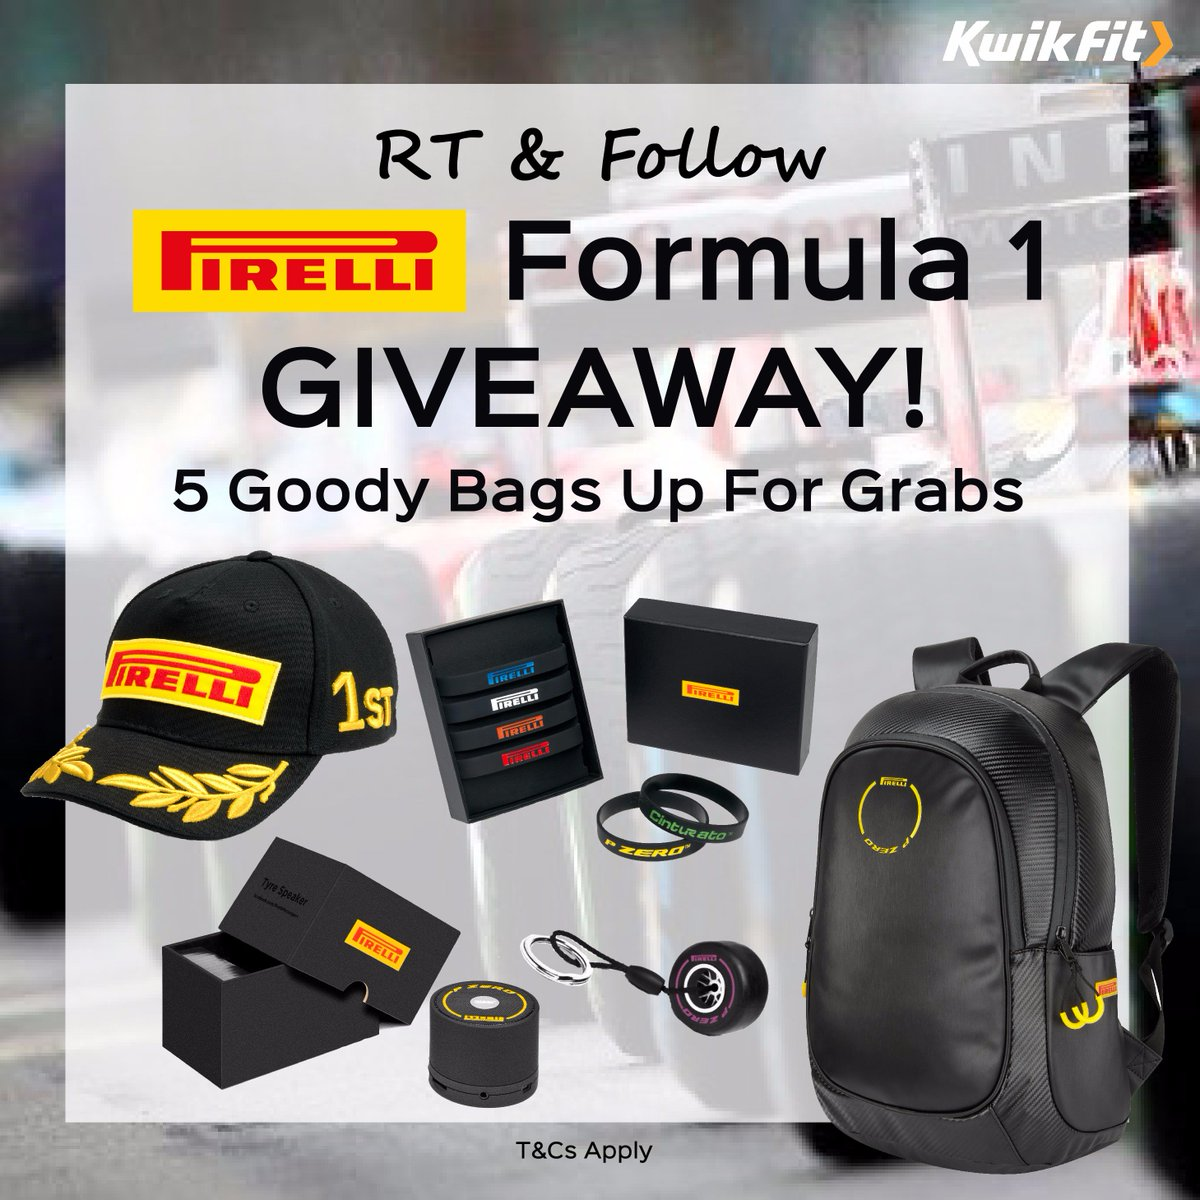 Getting excited about the #BritishGP? RT+F to #WIN a #Formula1 goody bag! #competition T&Cs https://t.co/1n1B216pmj https://t.co/3fy3TMKCDw